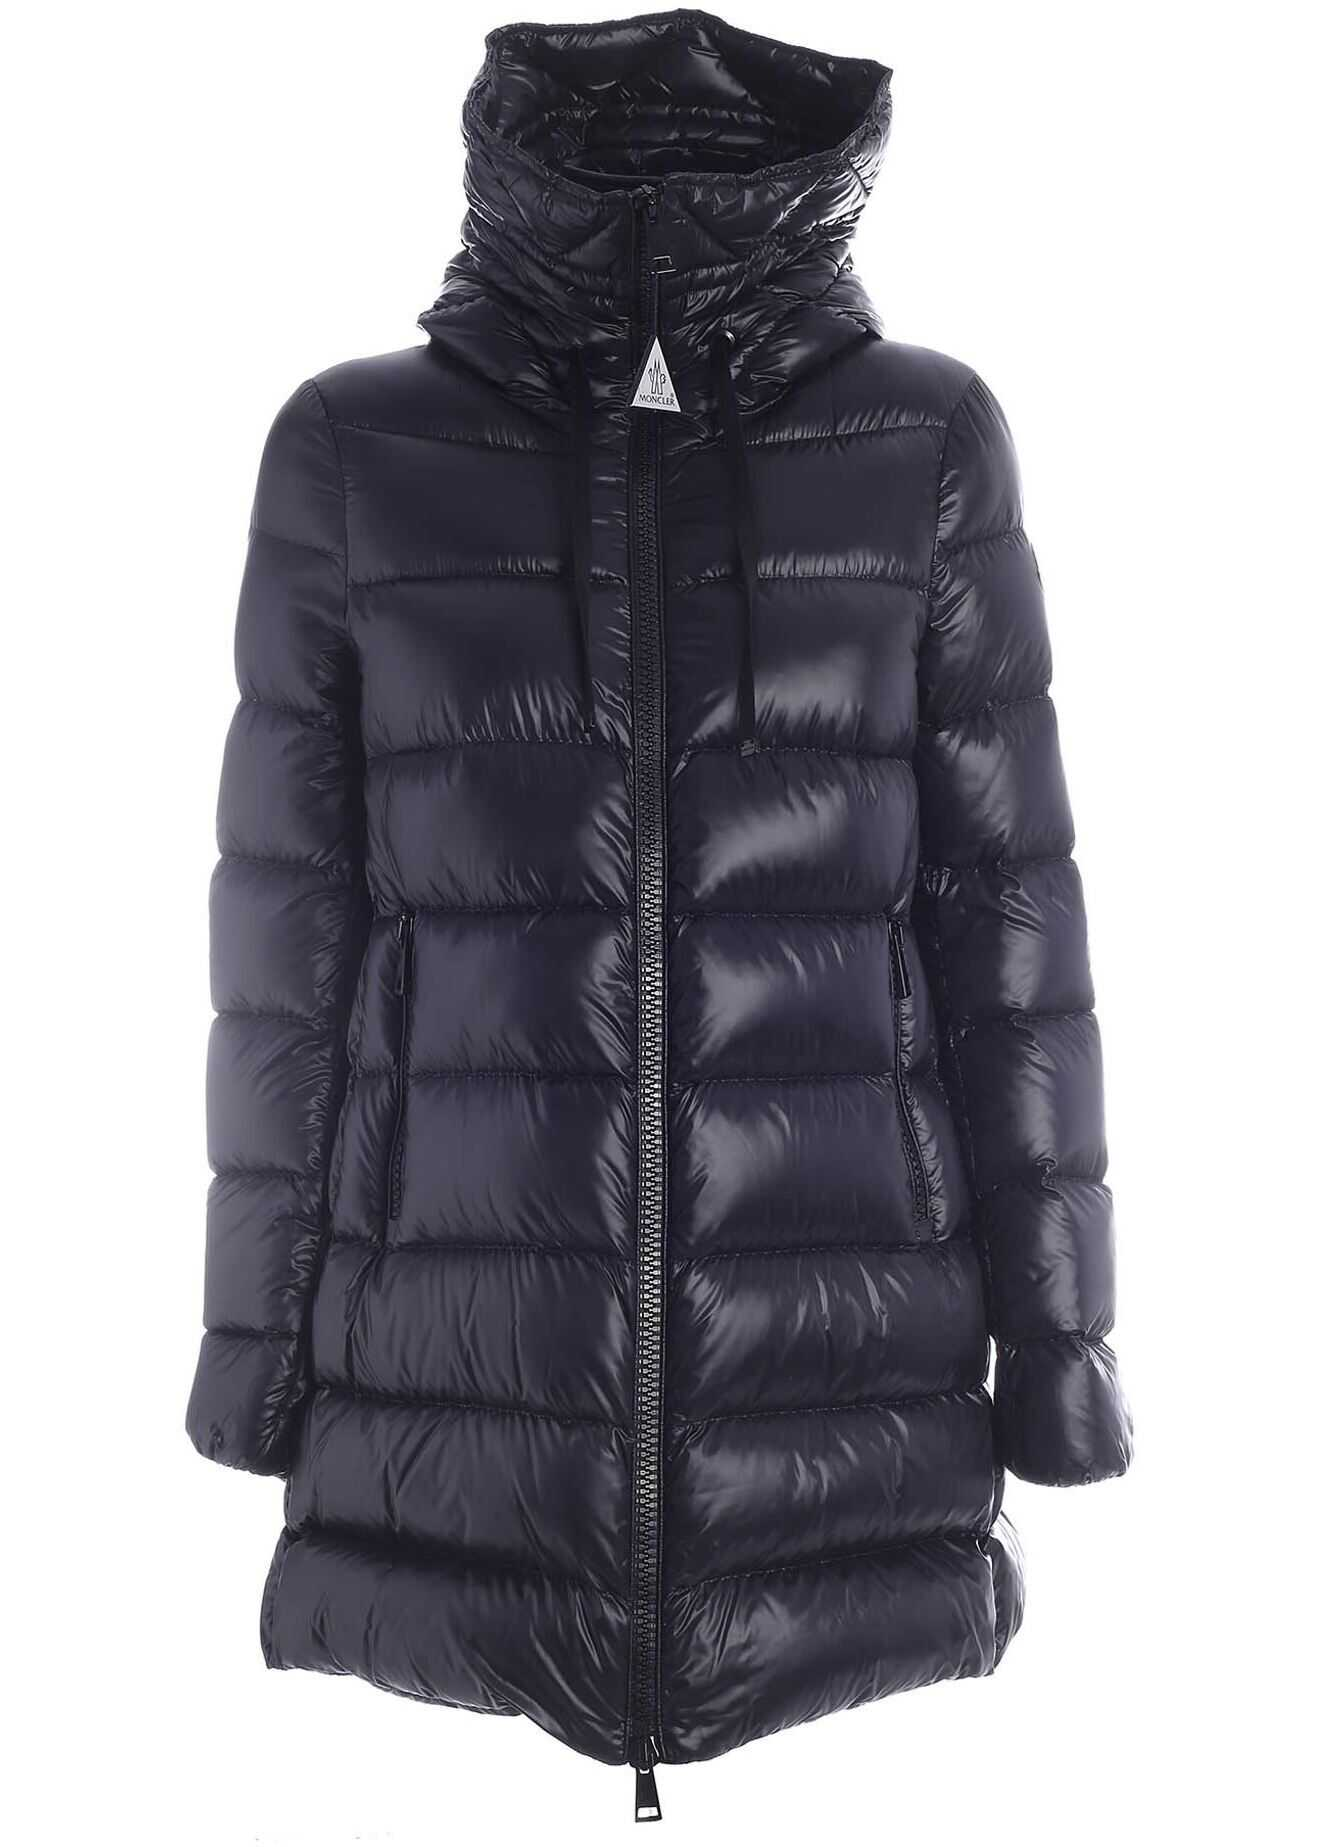 Moncler Suyen Long Down Jacket In Black Featuring Hood Black